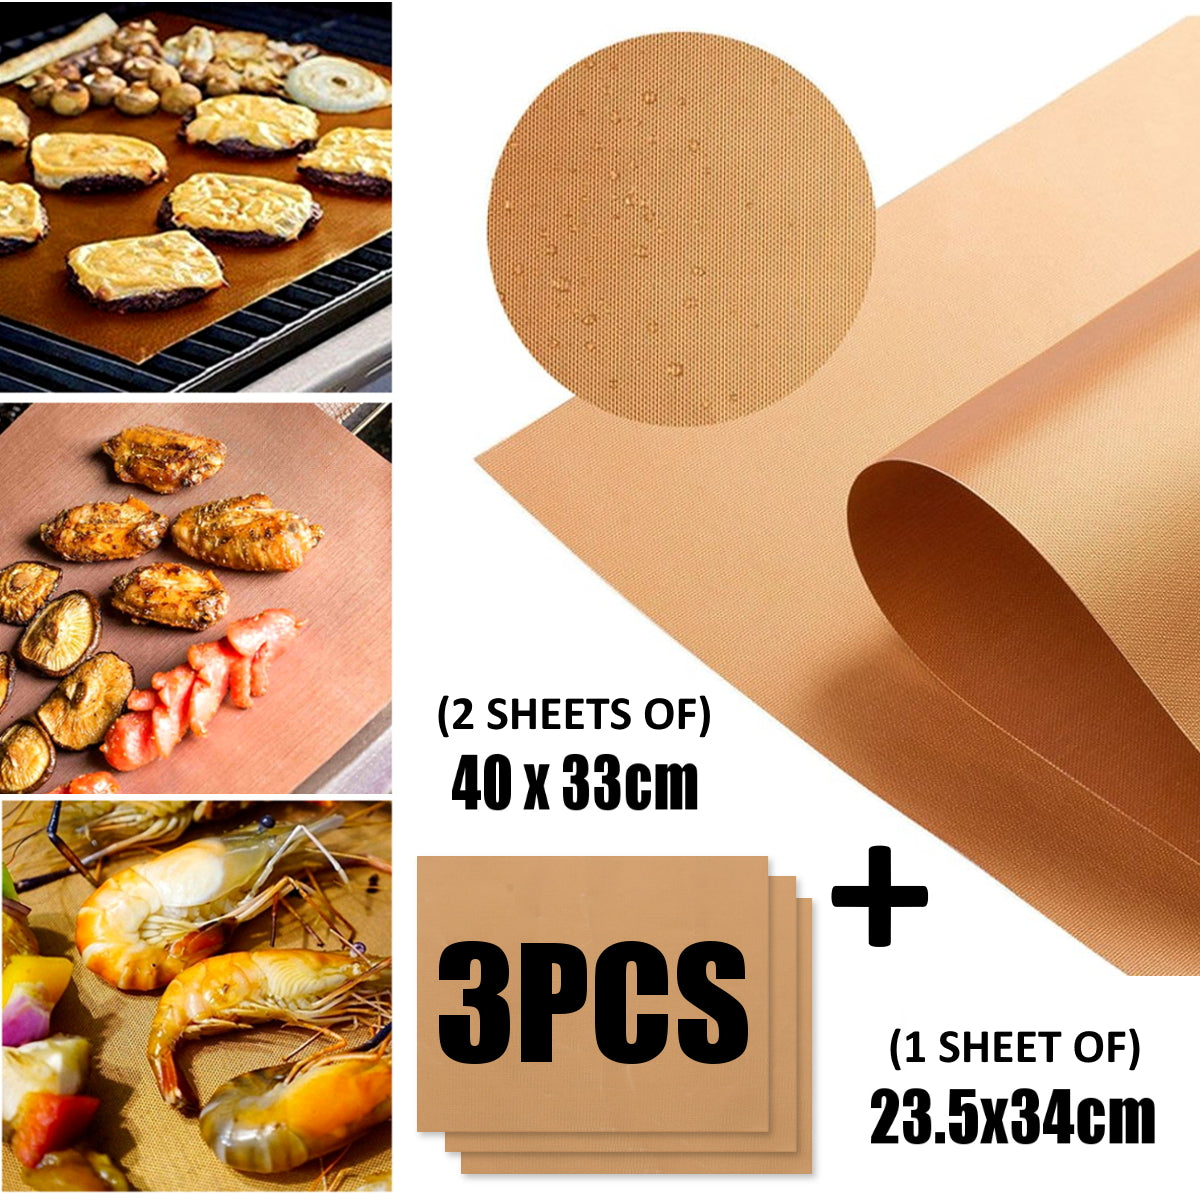 CopperWareZ™ 3 Piece Set Copper Grill Mat Copper Grill Sheet Copper BBQ Mat